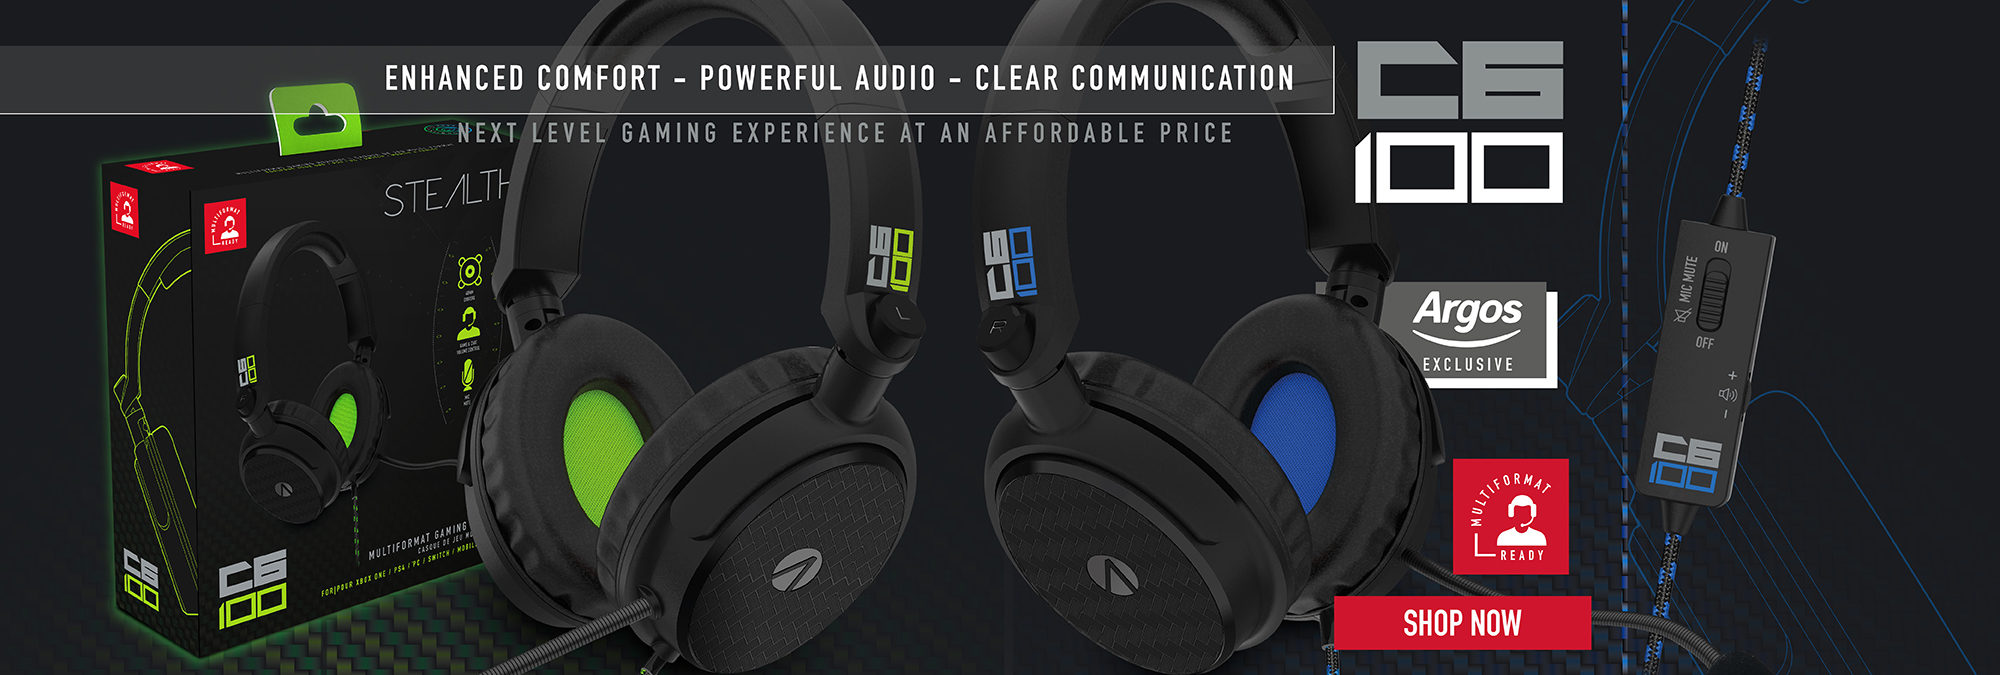 STEALTH C6-100 Green and Blue Exclusive to Argos!